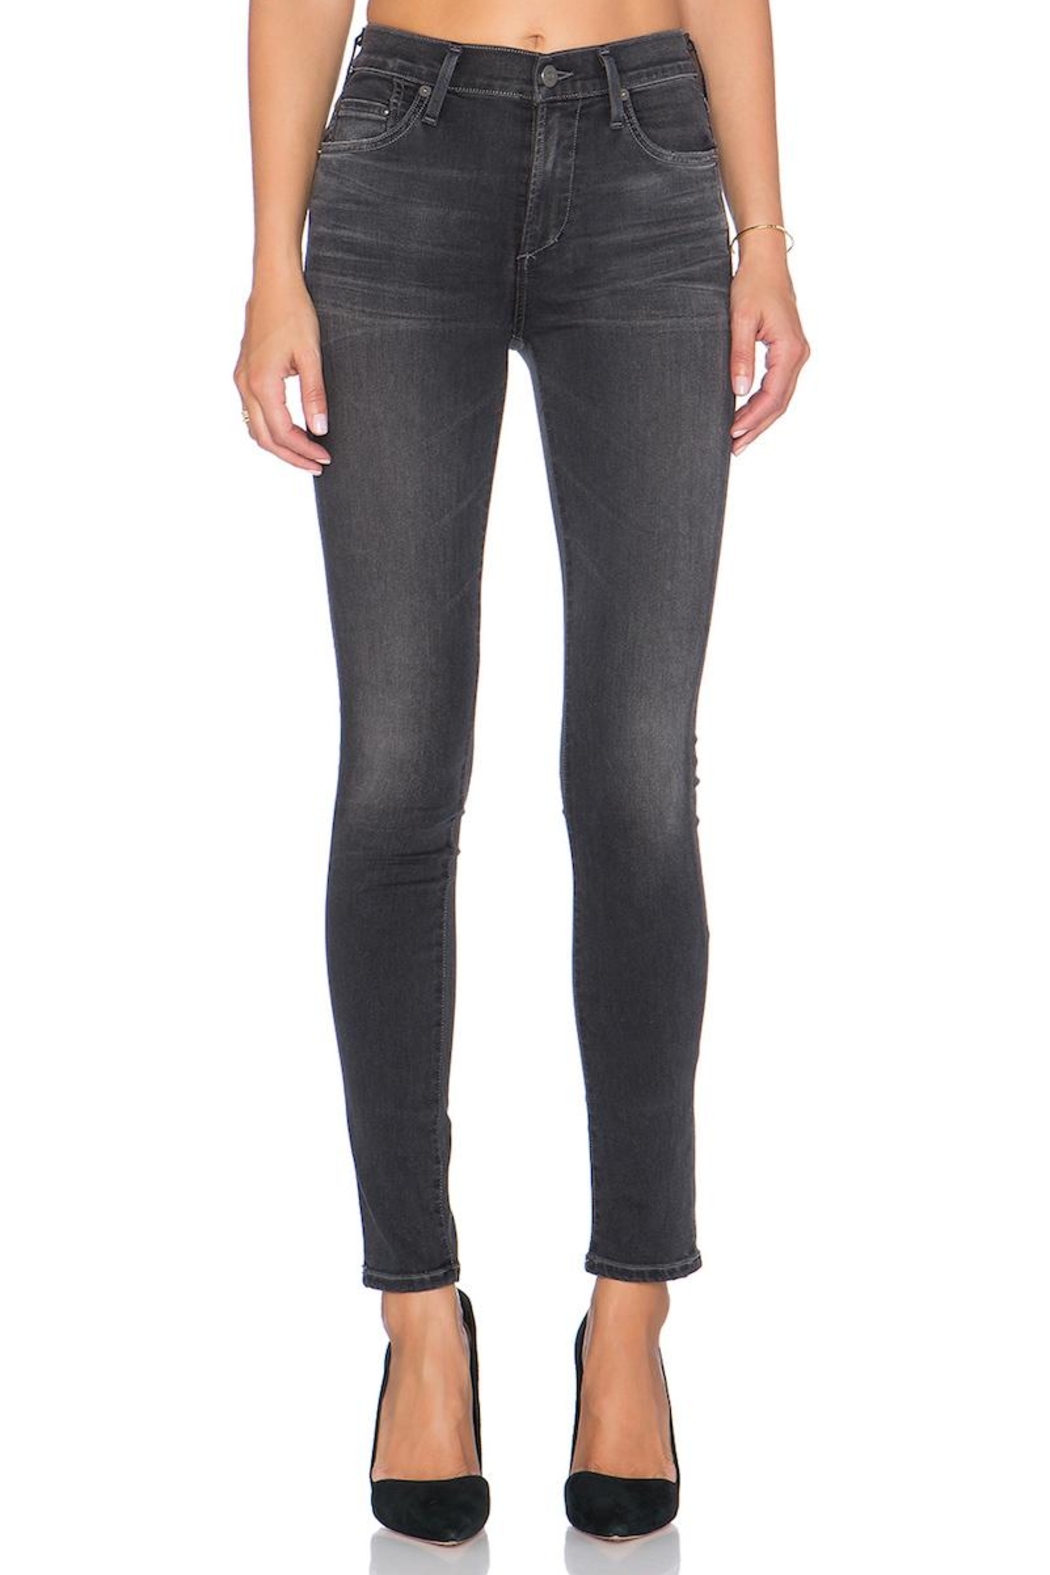 Citizens of Humanity Grey Skinny Jeans - Main Image